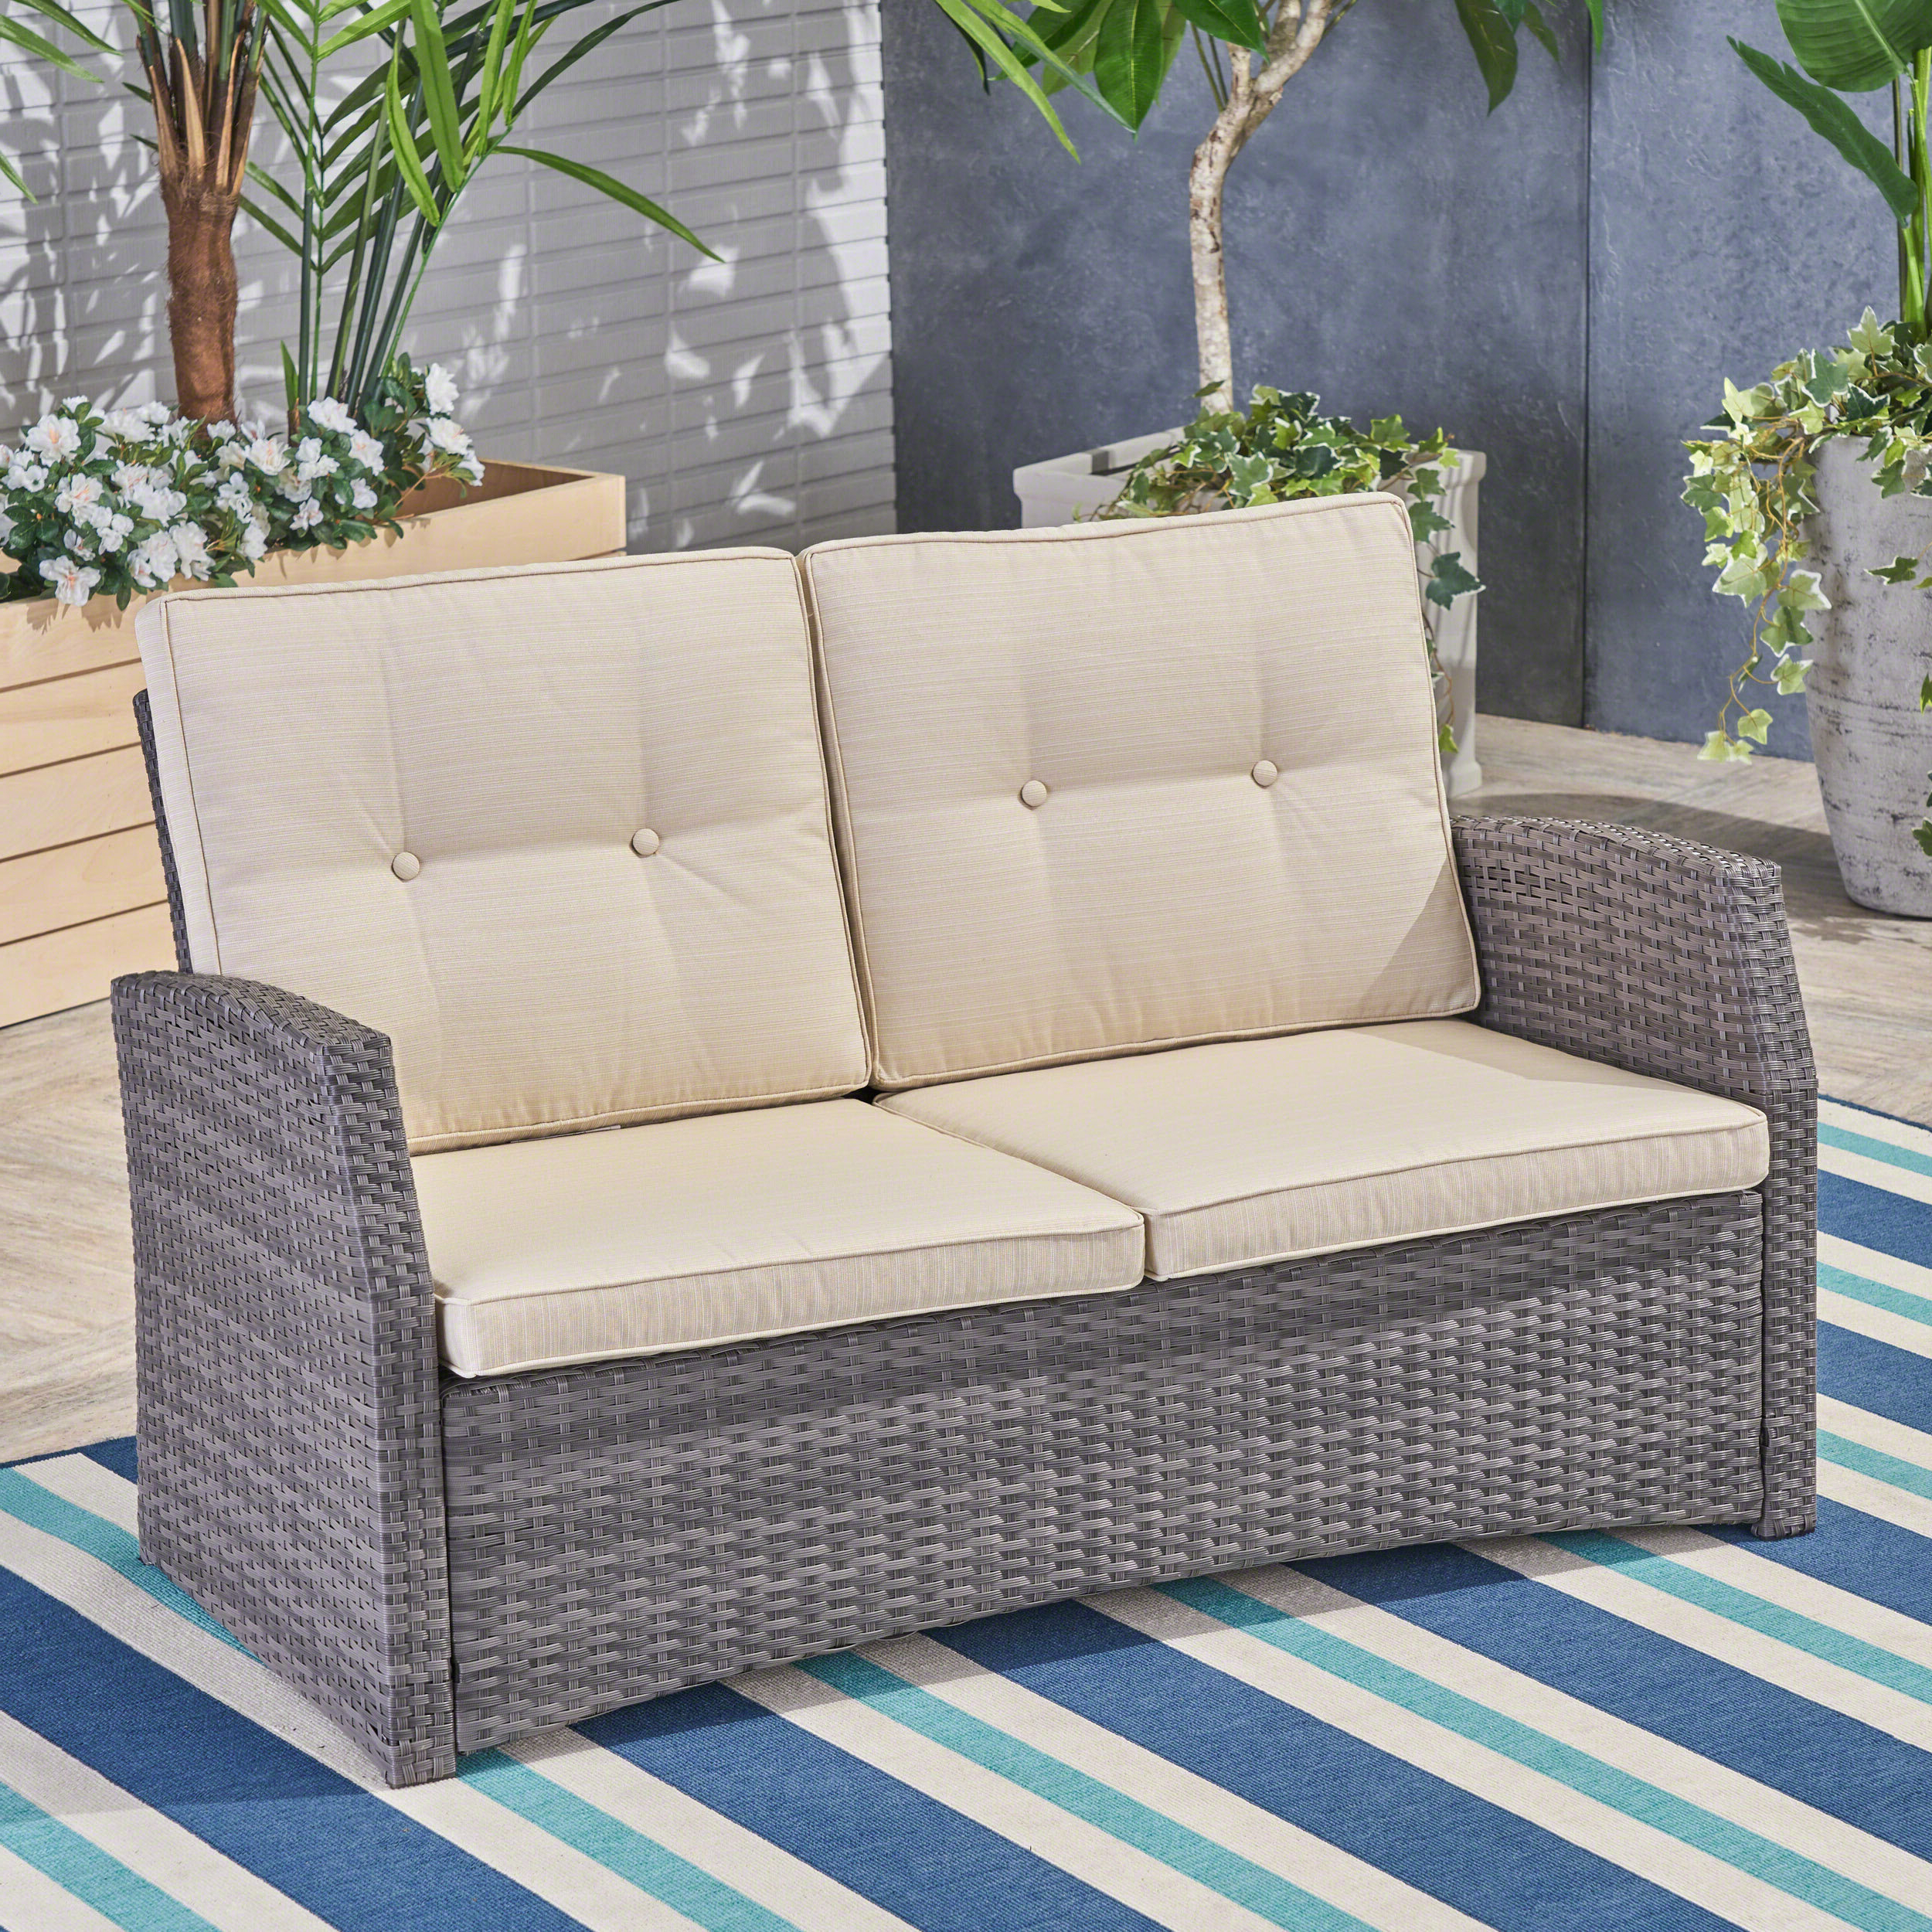 Loganville Loveseat With Cushions For Latest Furst Outdoor Loveseats With Cushions (View 18 of 25)